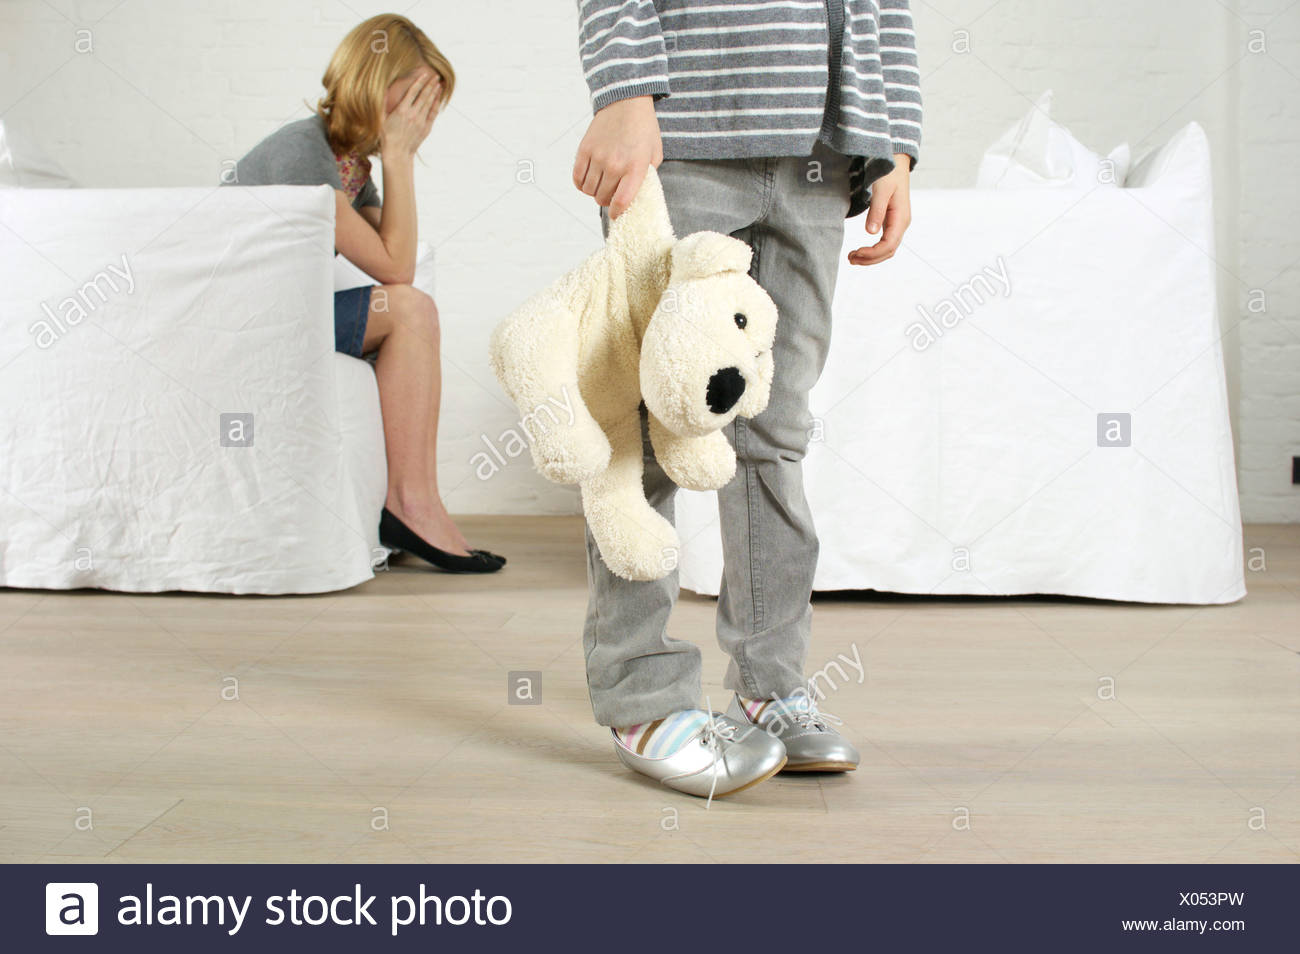 Despaired woman sitting in armchair, girl holding stuffed animal standing in foreground - Stock Image